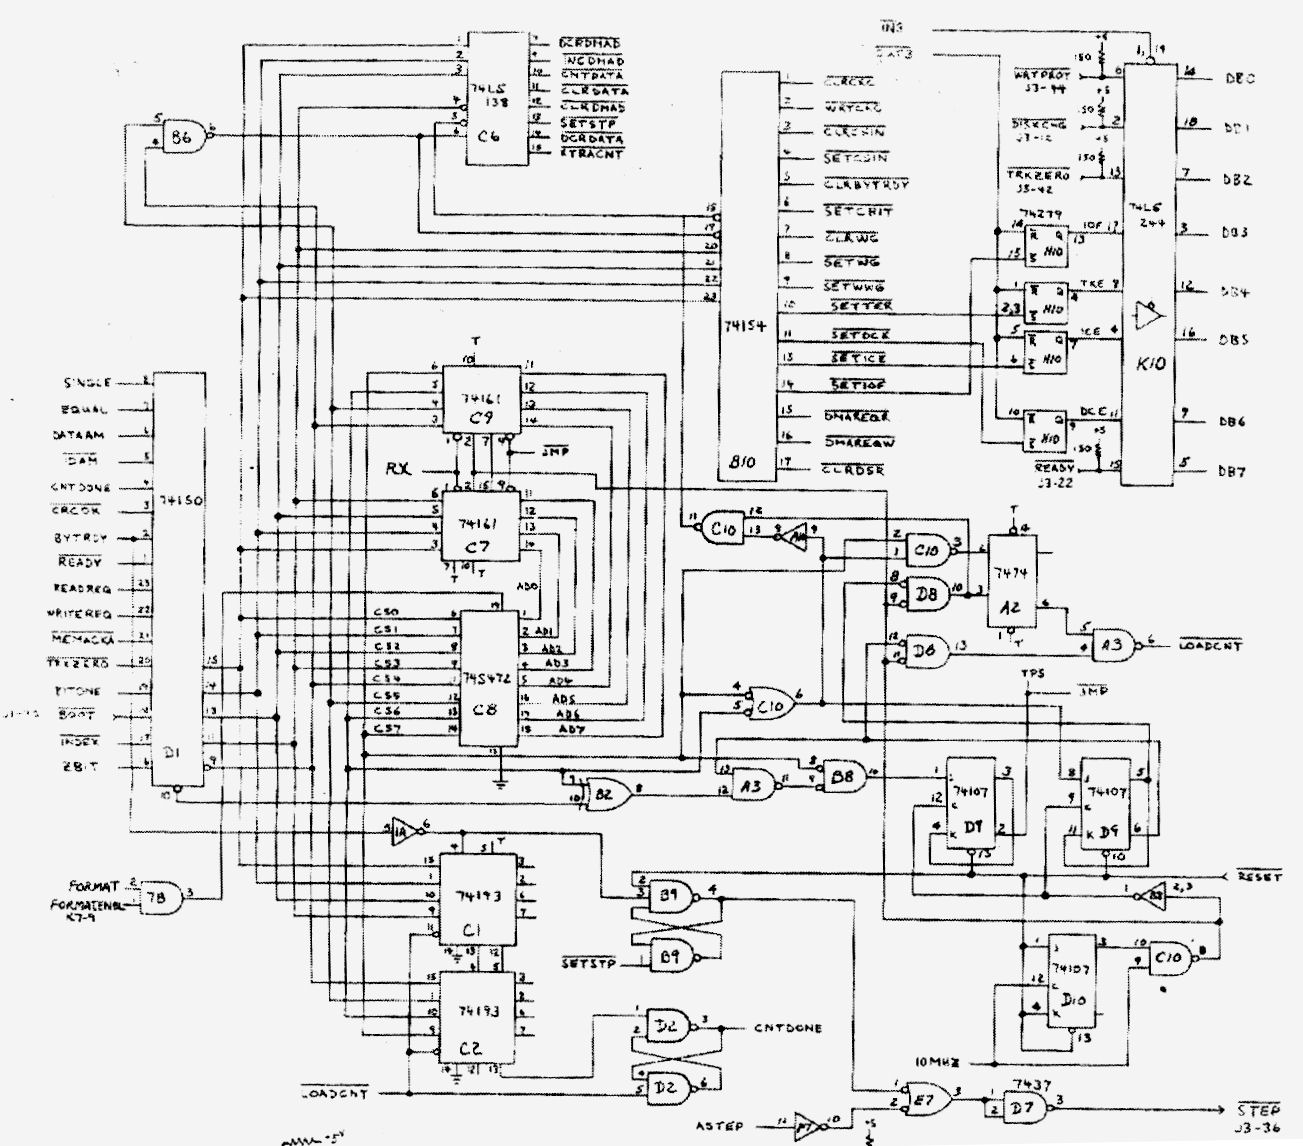 Torode S Floppy Controller And Its History